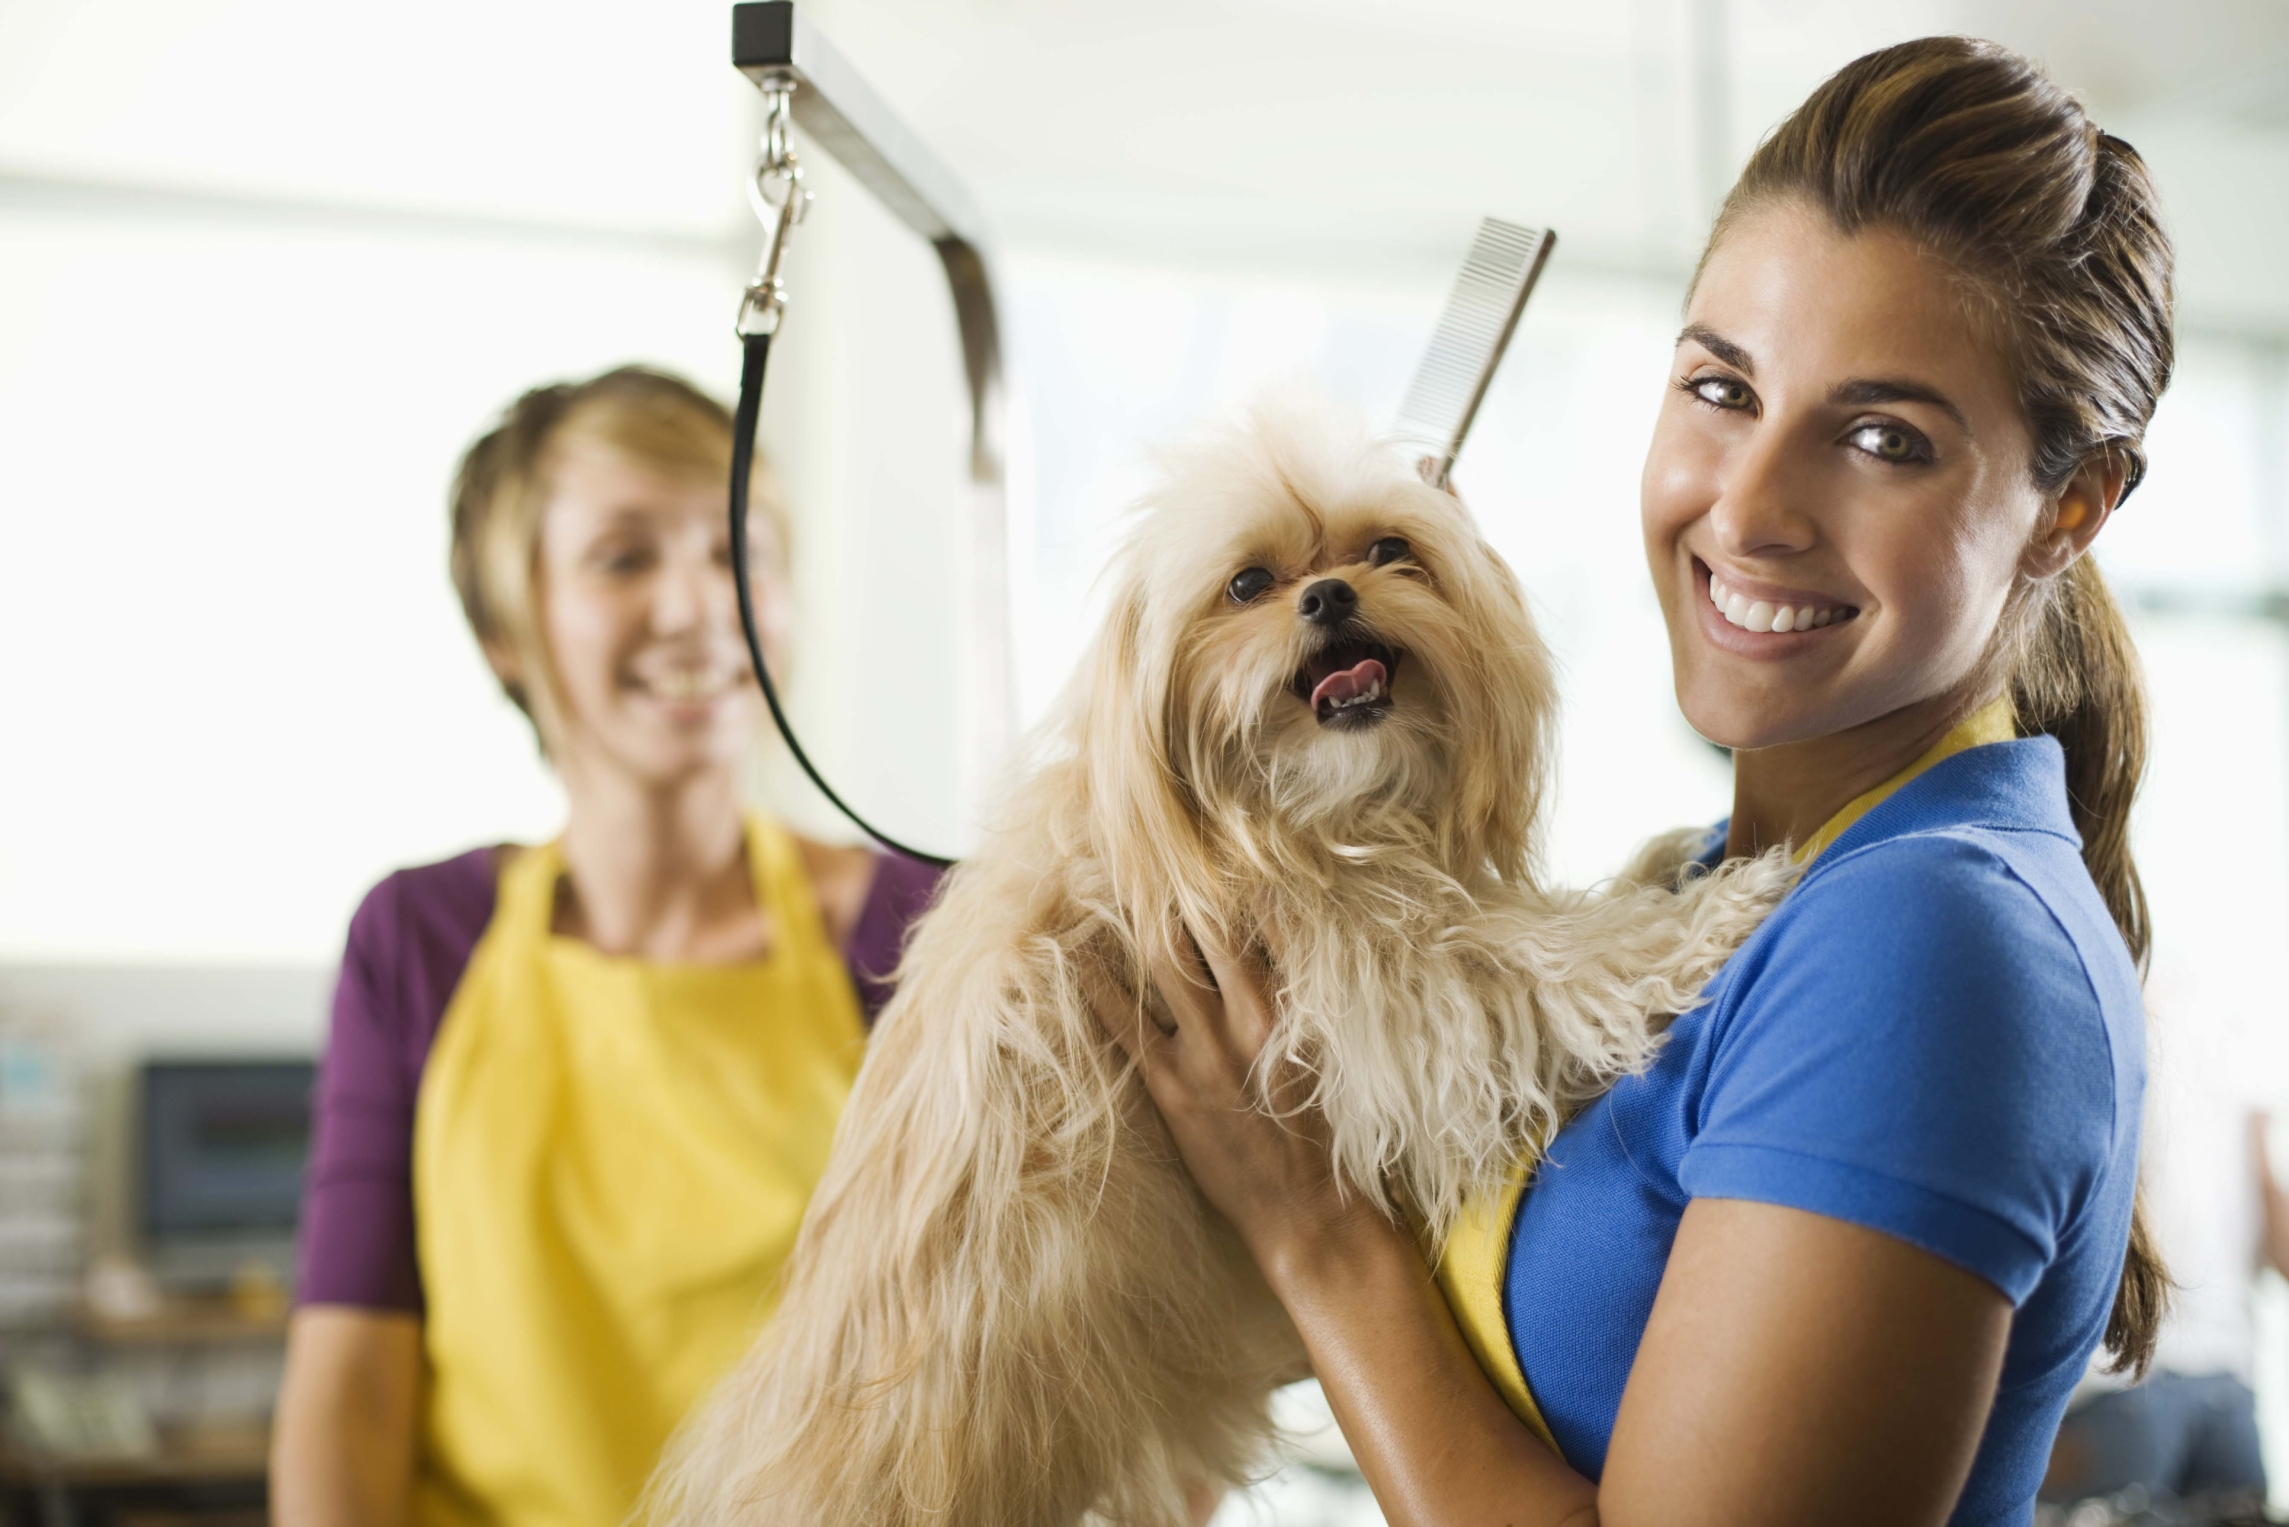 What Is Required in Missouri to Start a Dog Breeding